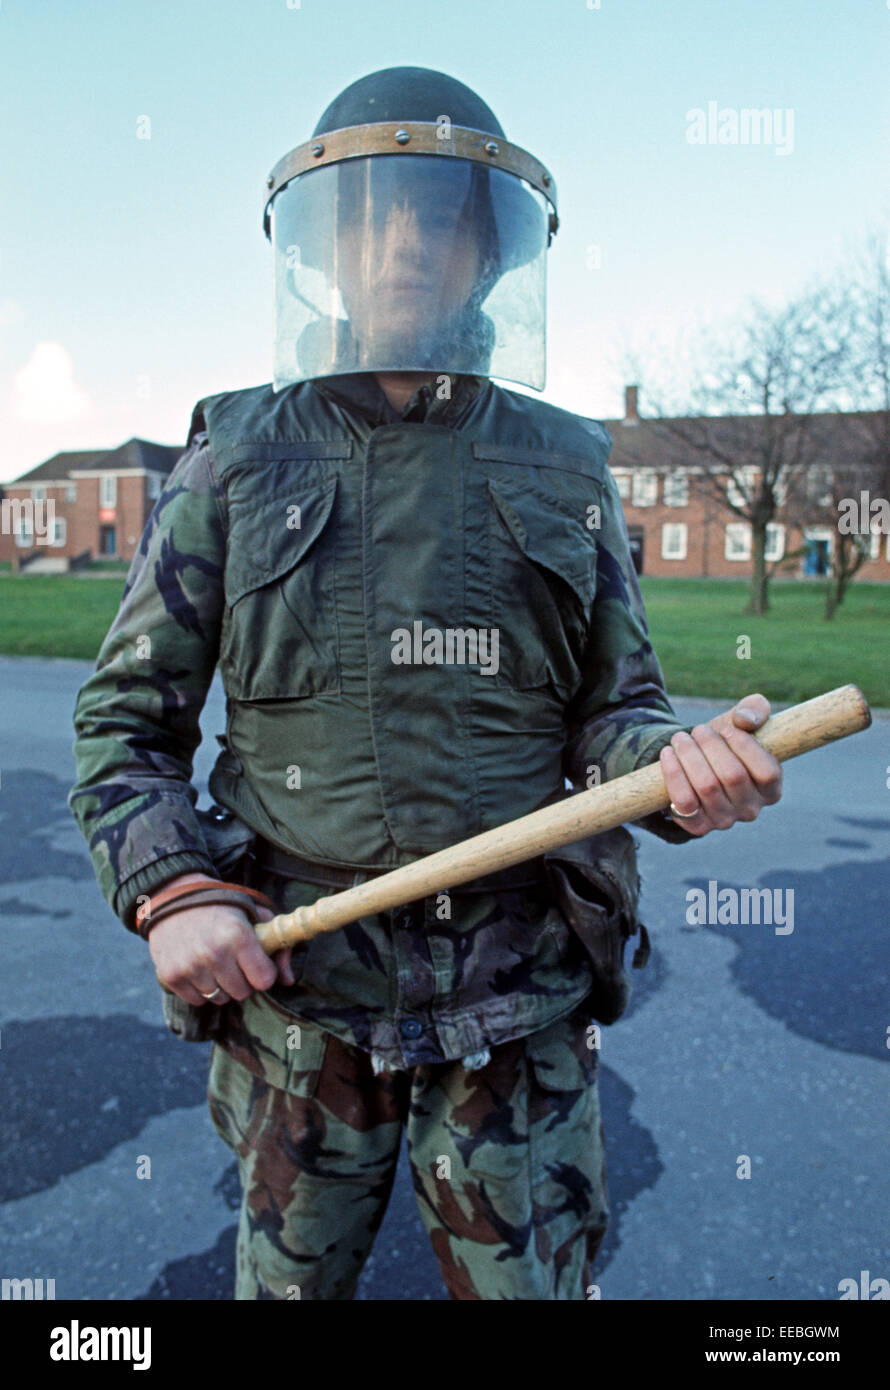 WEAPONS OF ULSTER - FEBRUARY 1972. riot control baton and equipment used by The British Army, during The Troubles, - Stock Image